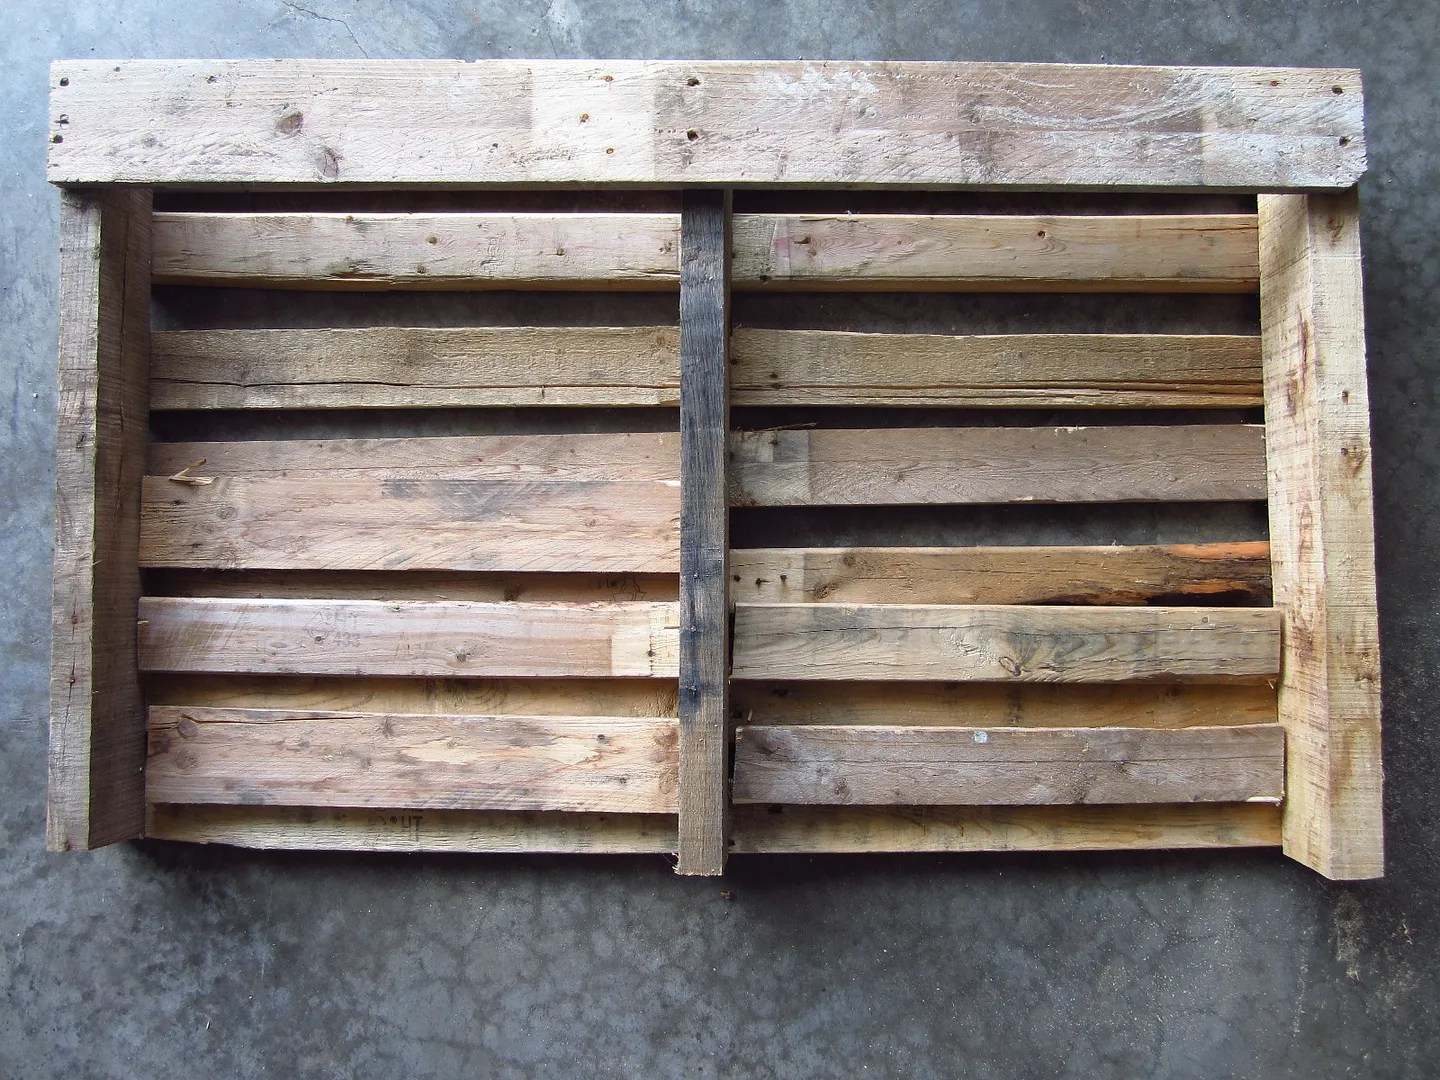 American Flag Pallet / HomeStagingBloomingtonIL